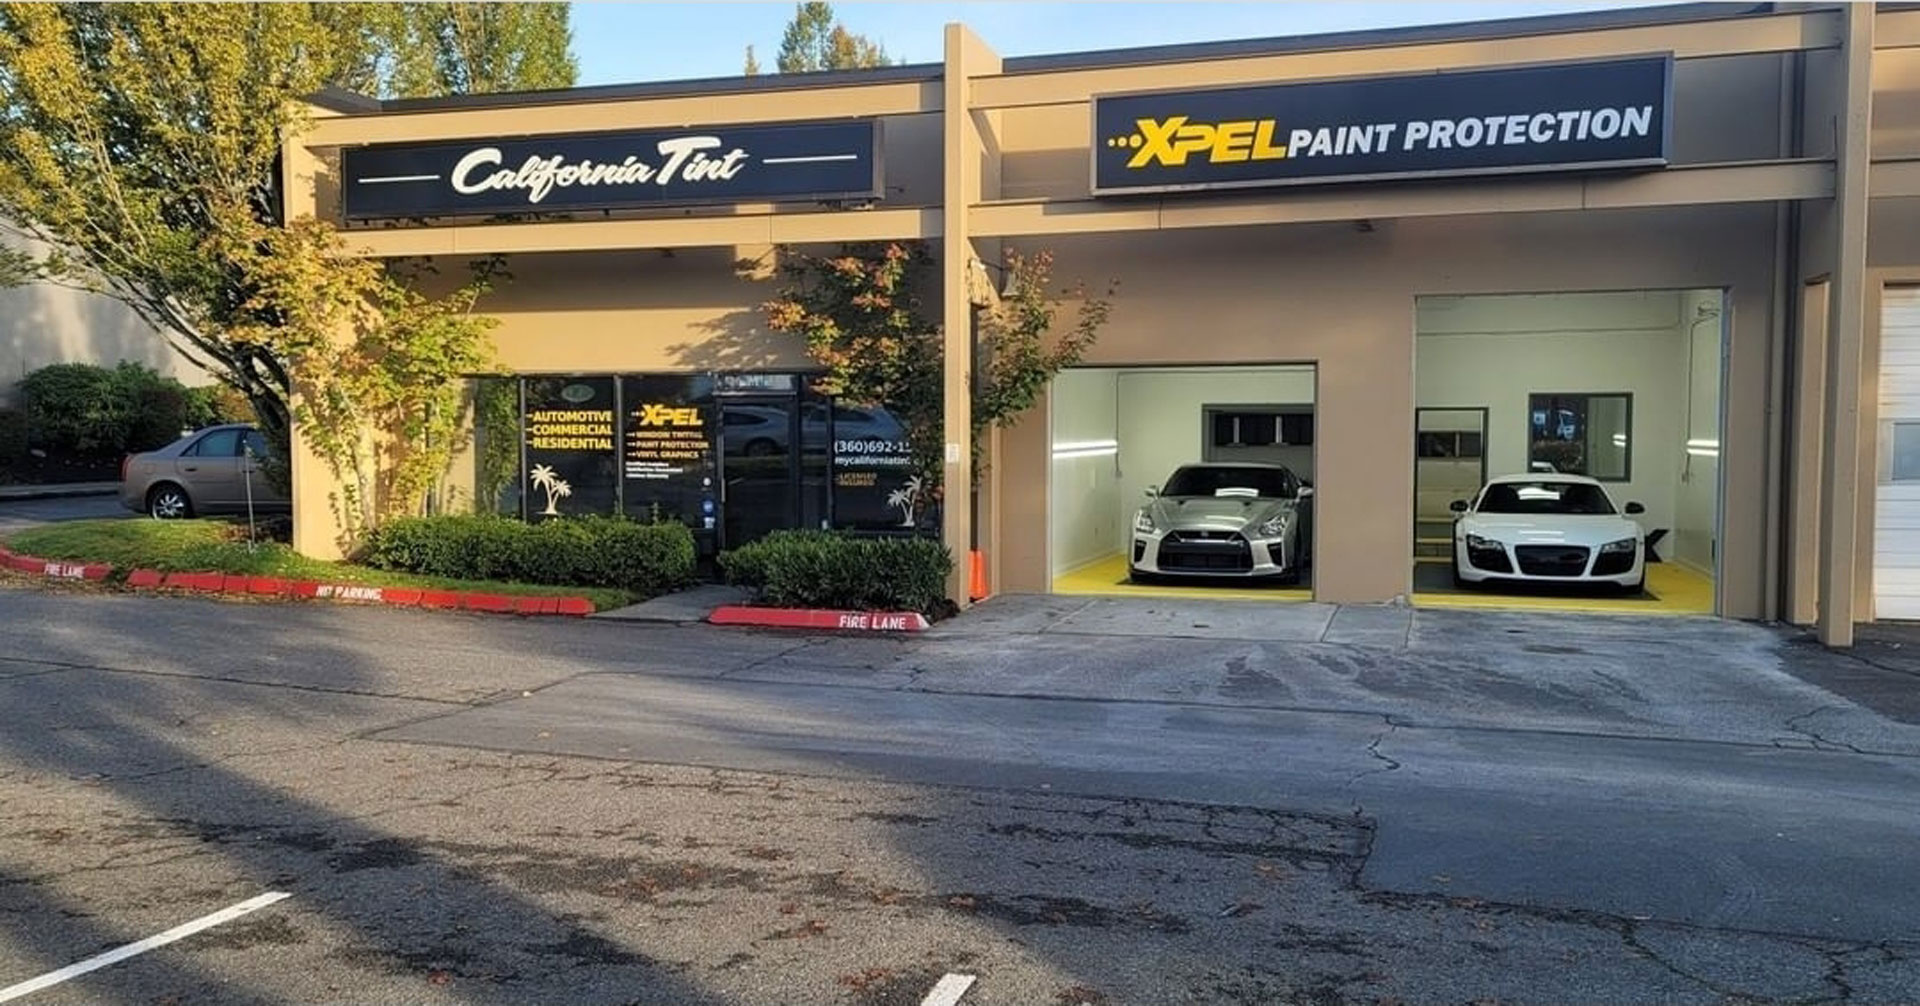 california tint xpel paint protection building